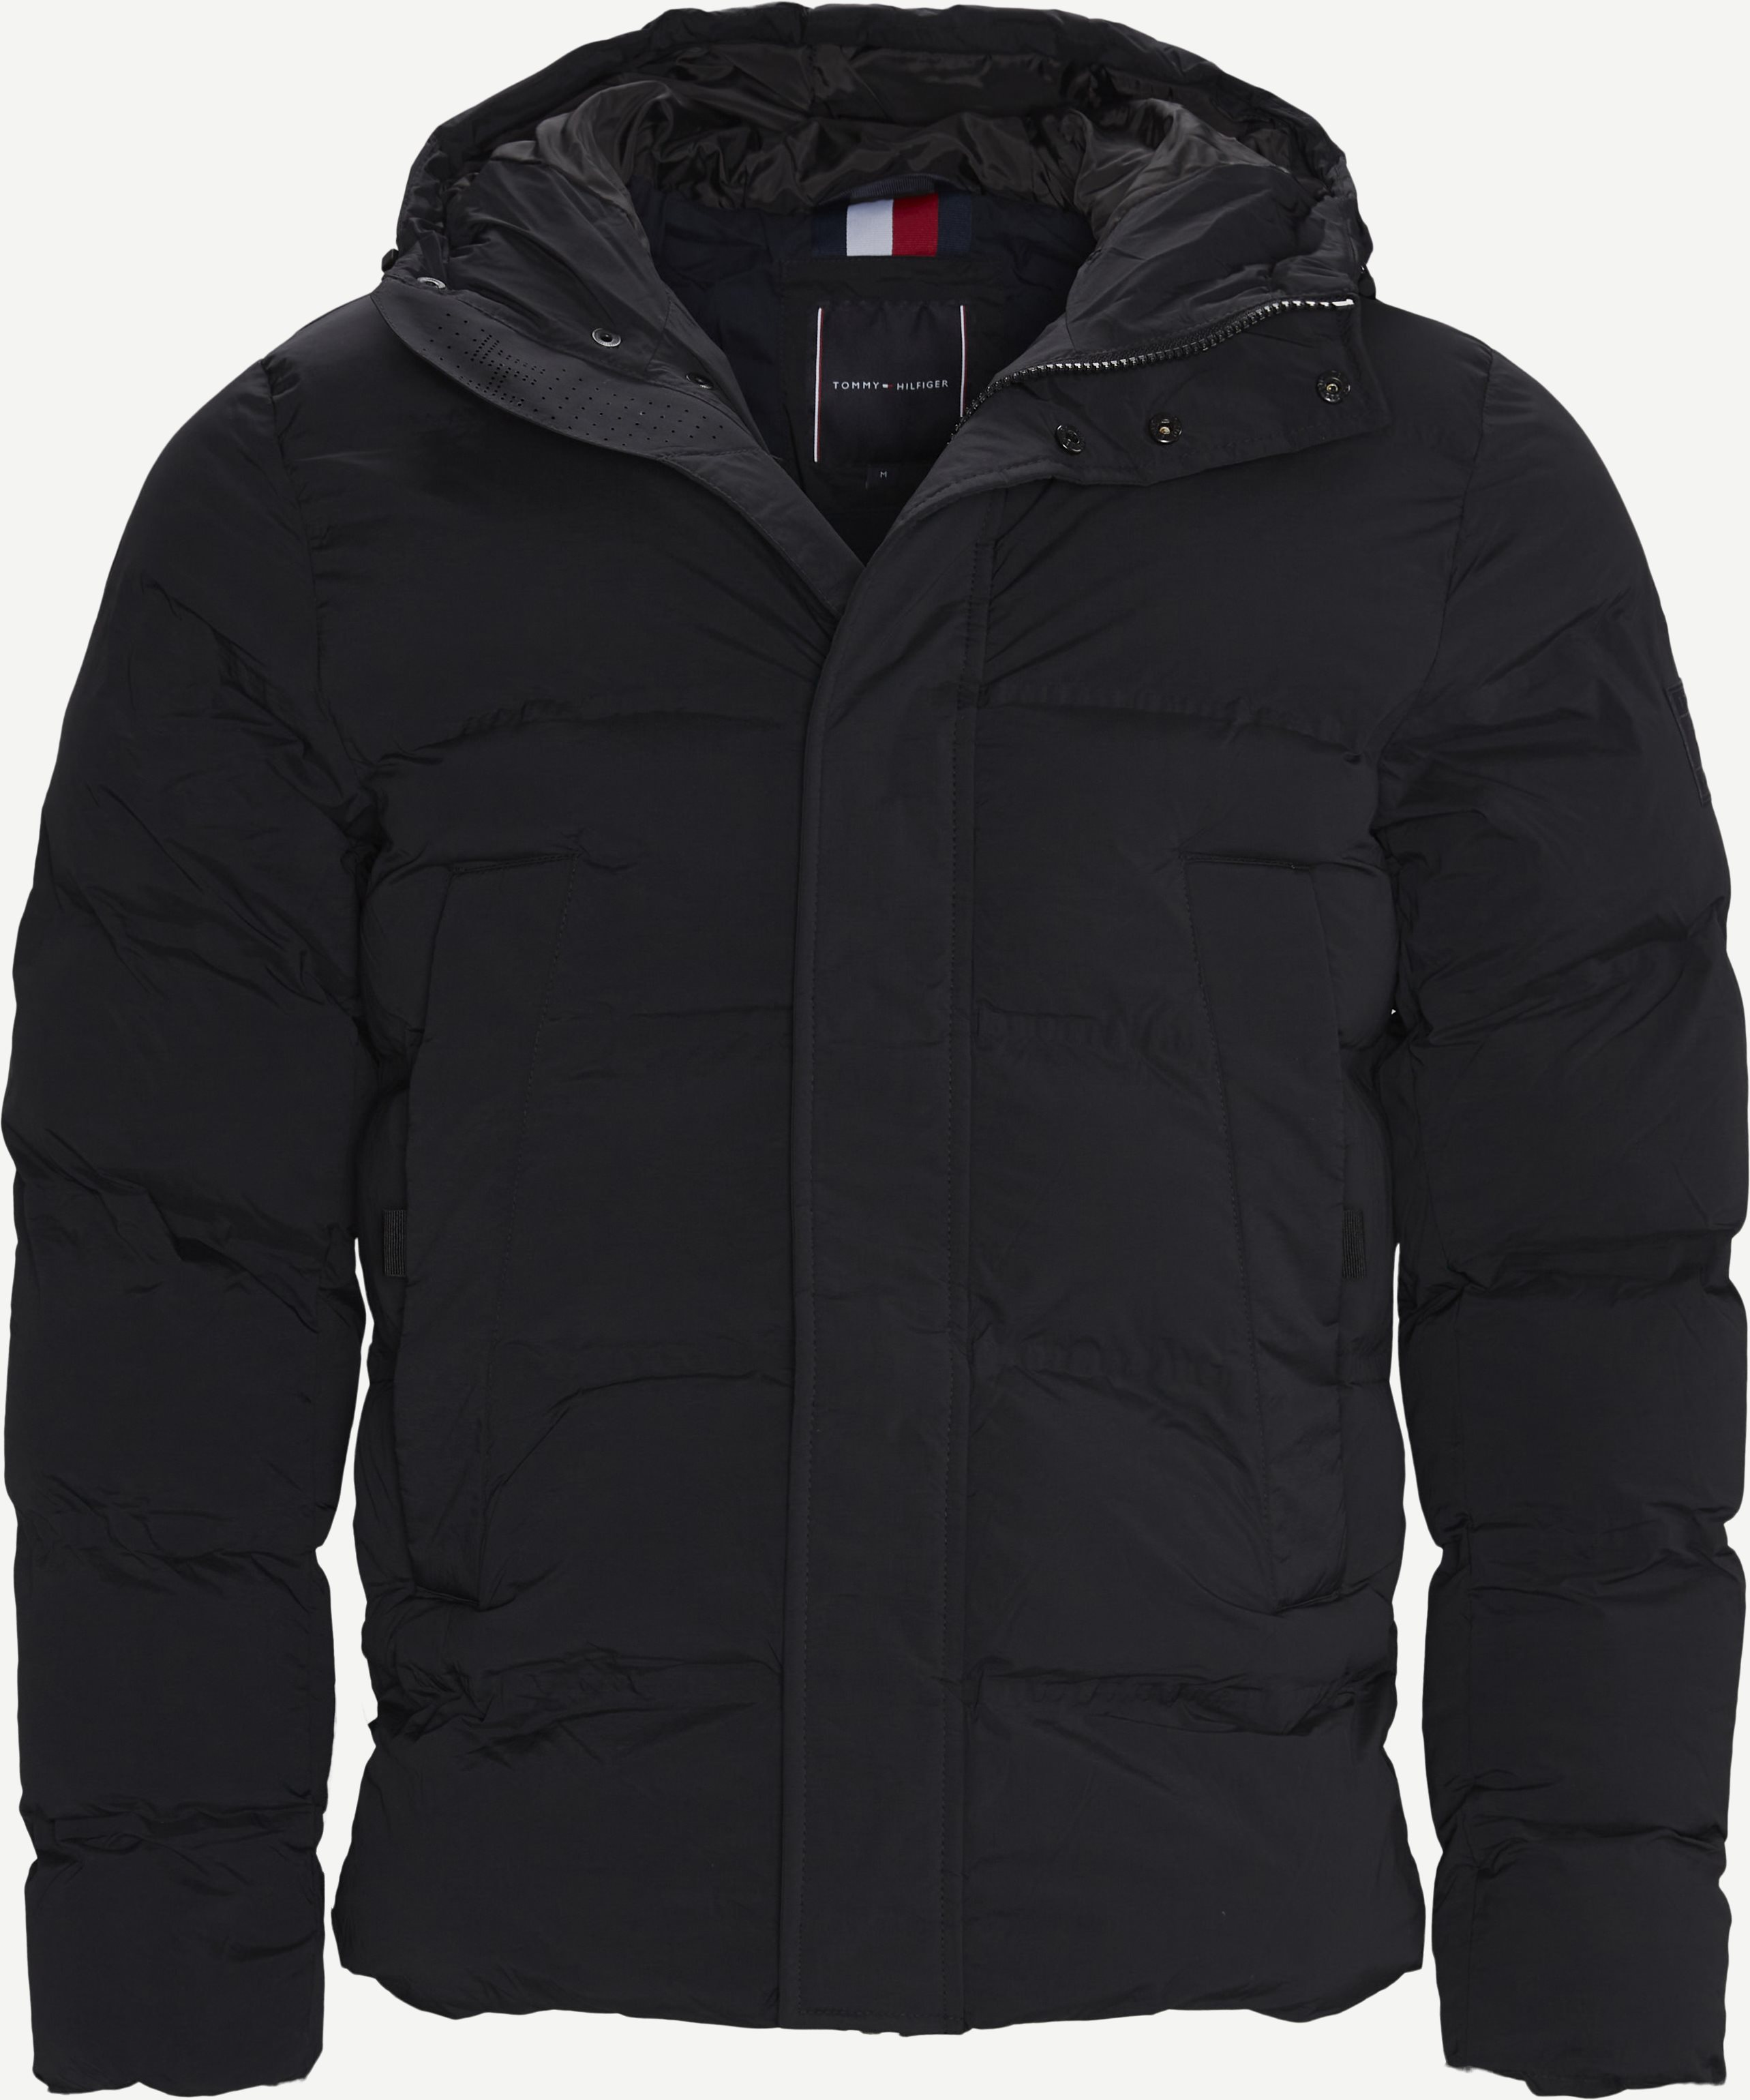 Hooded Stretch Jacket - Jackets - Regular - Black